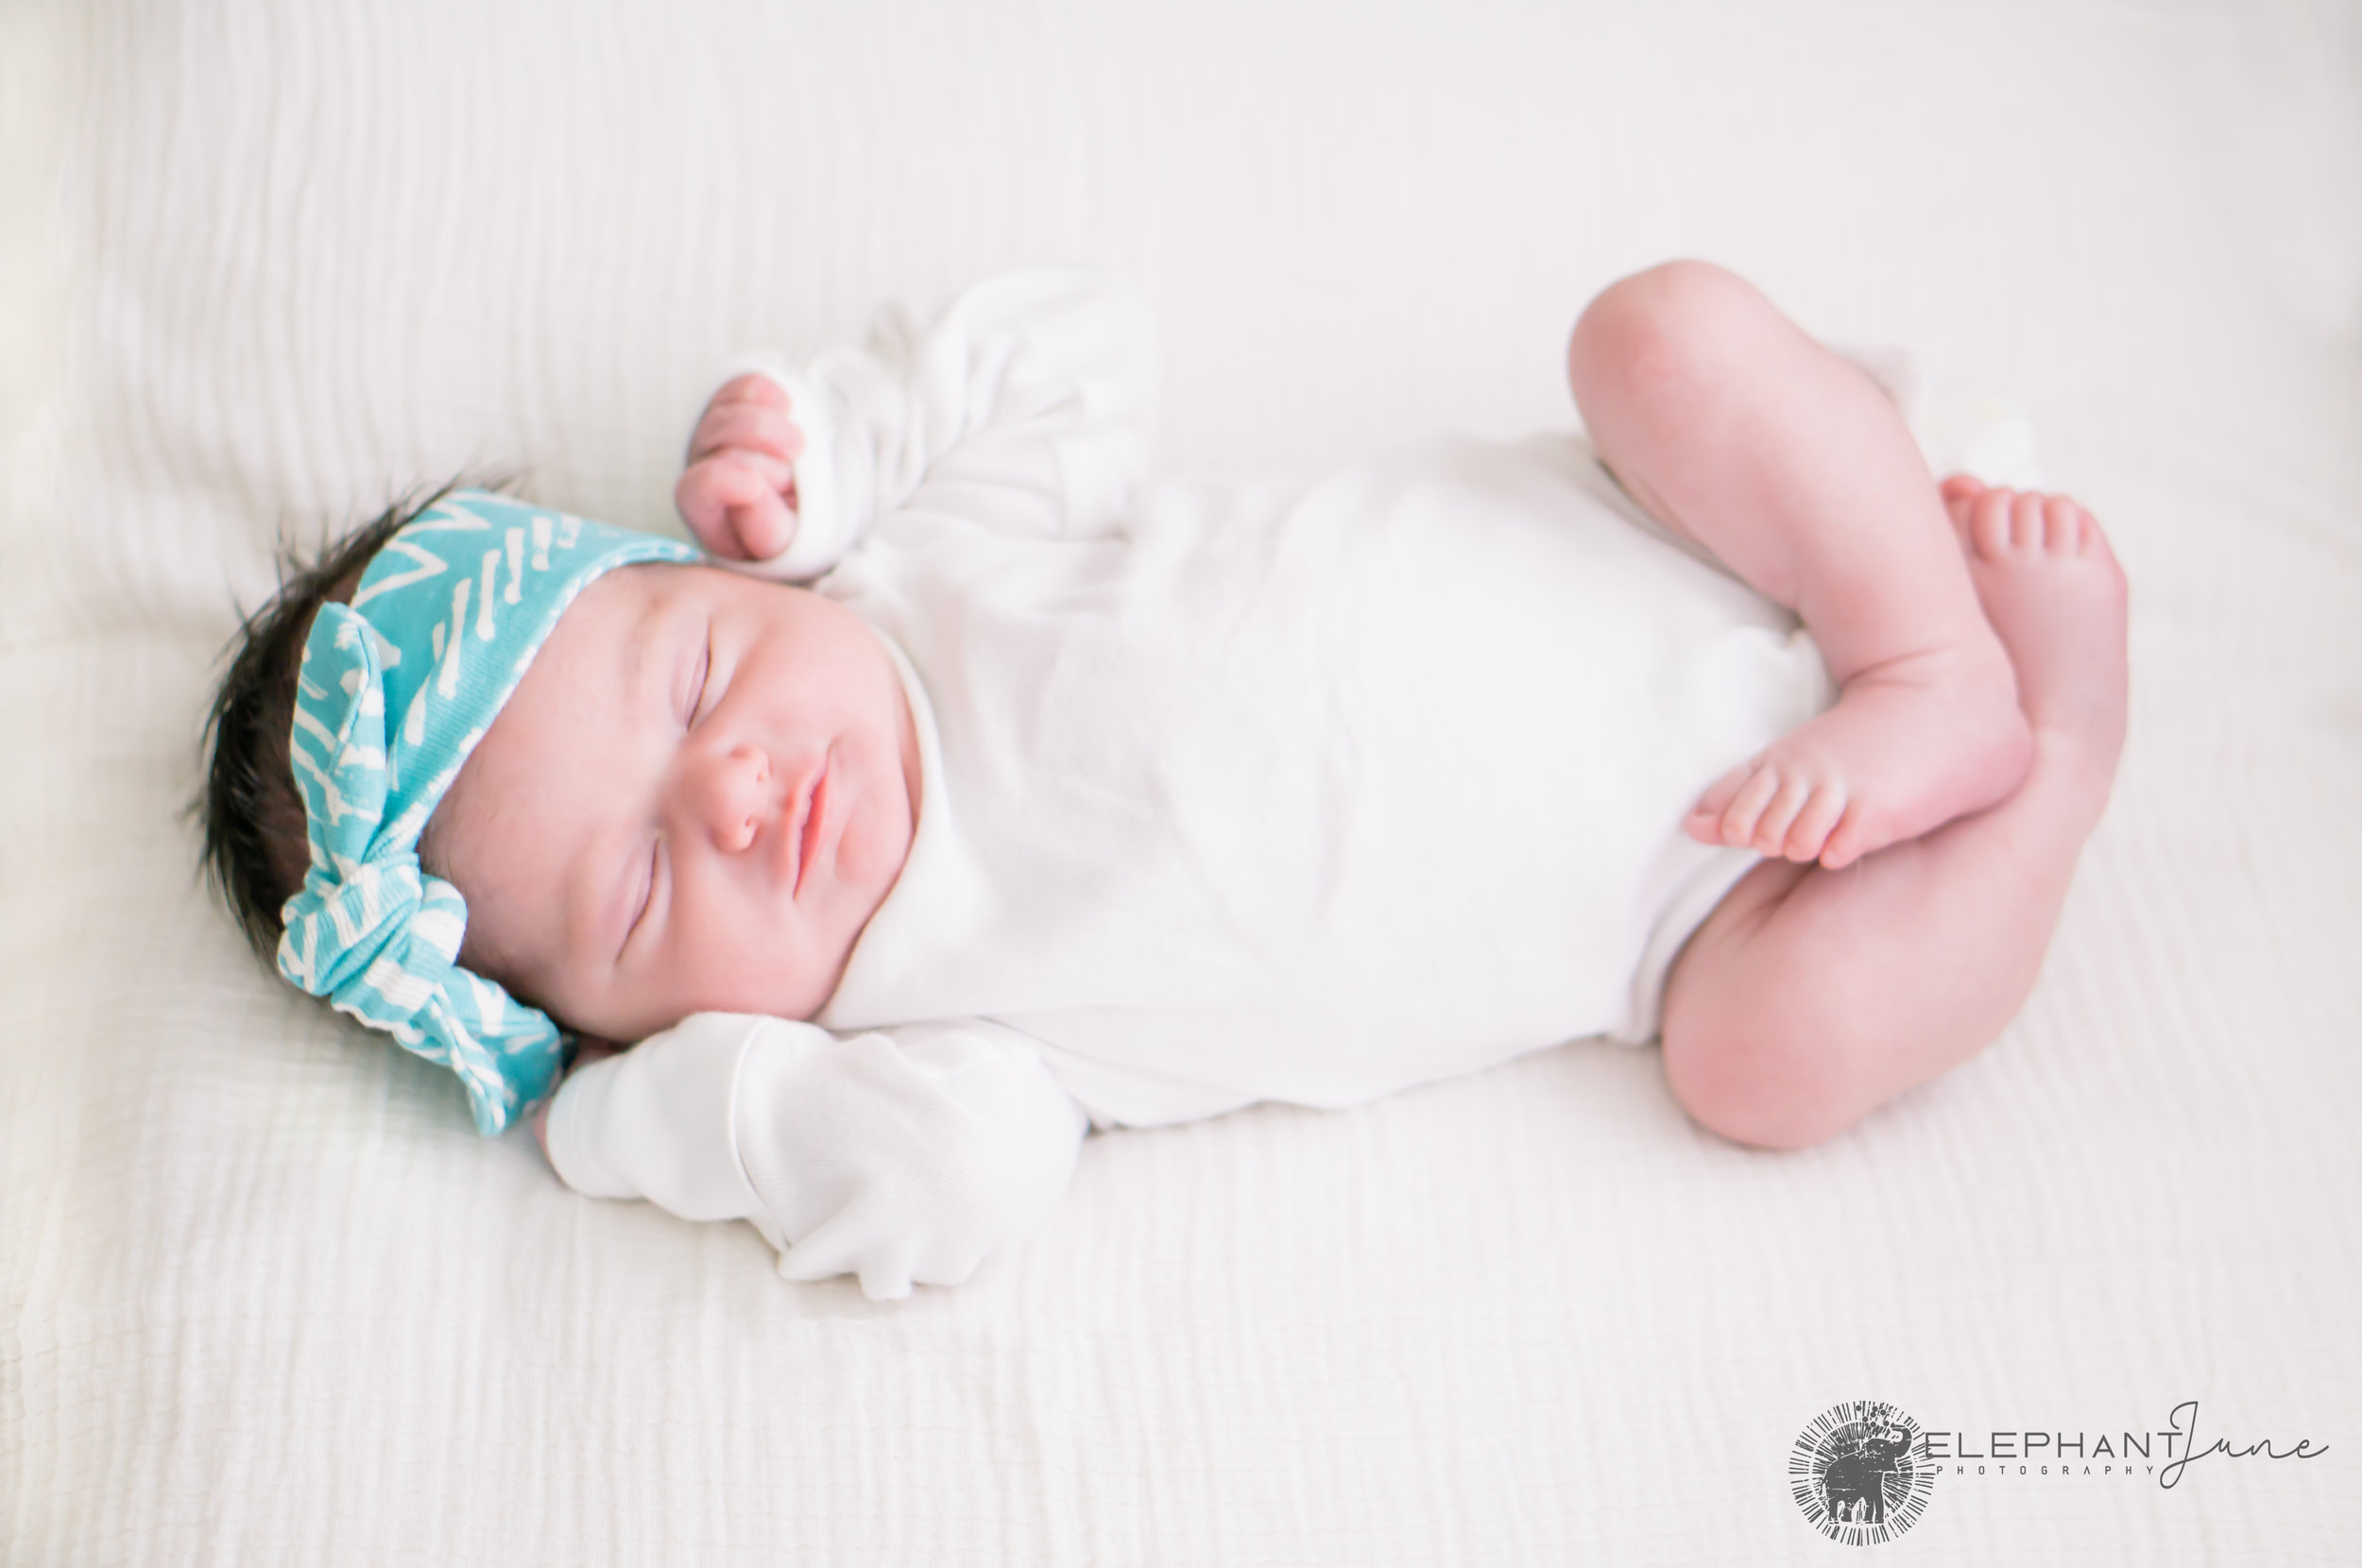 Elephant June Photography_Newborn_Willow_Full.jpg